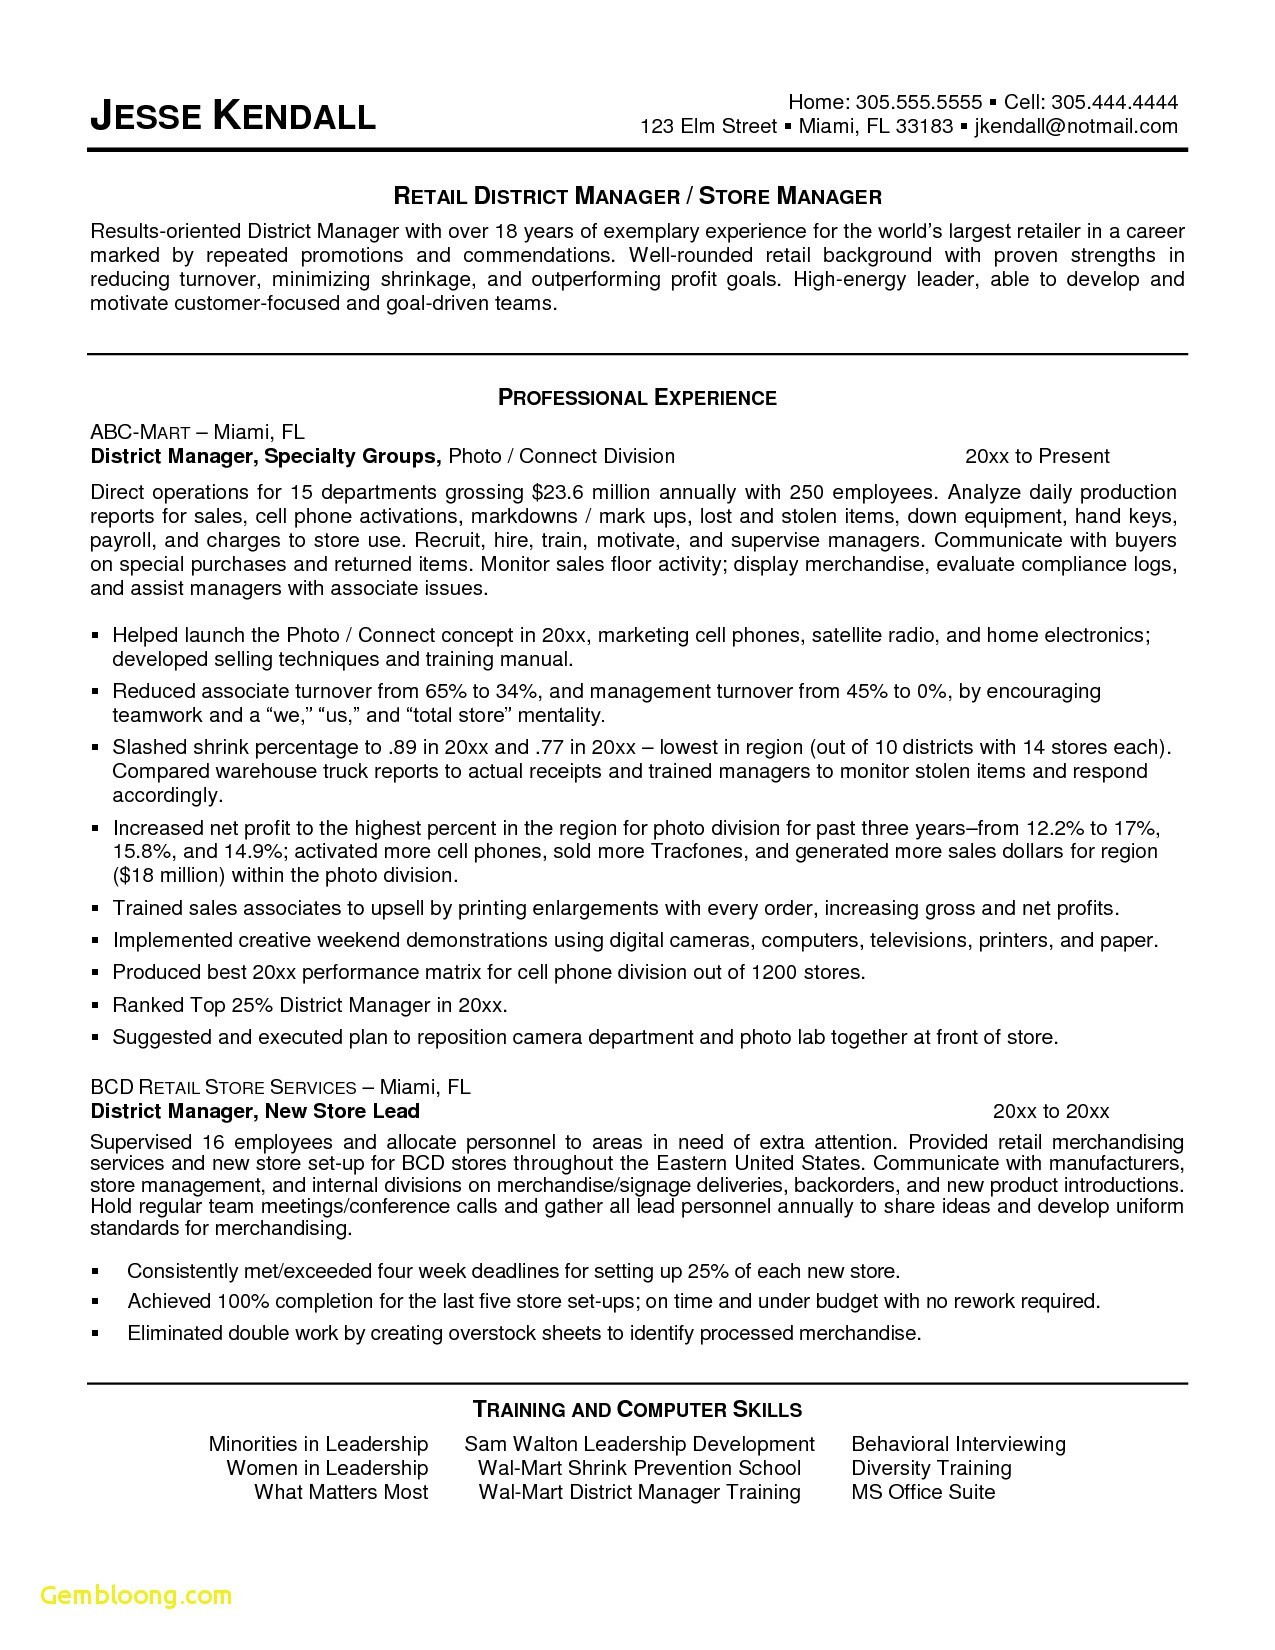 Resume Template Restaurant - Customer Service Manager Resume Unique Fresh Grapher Resume Sample